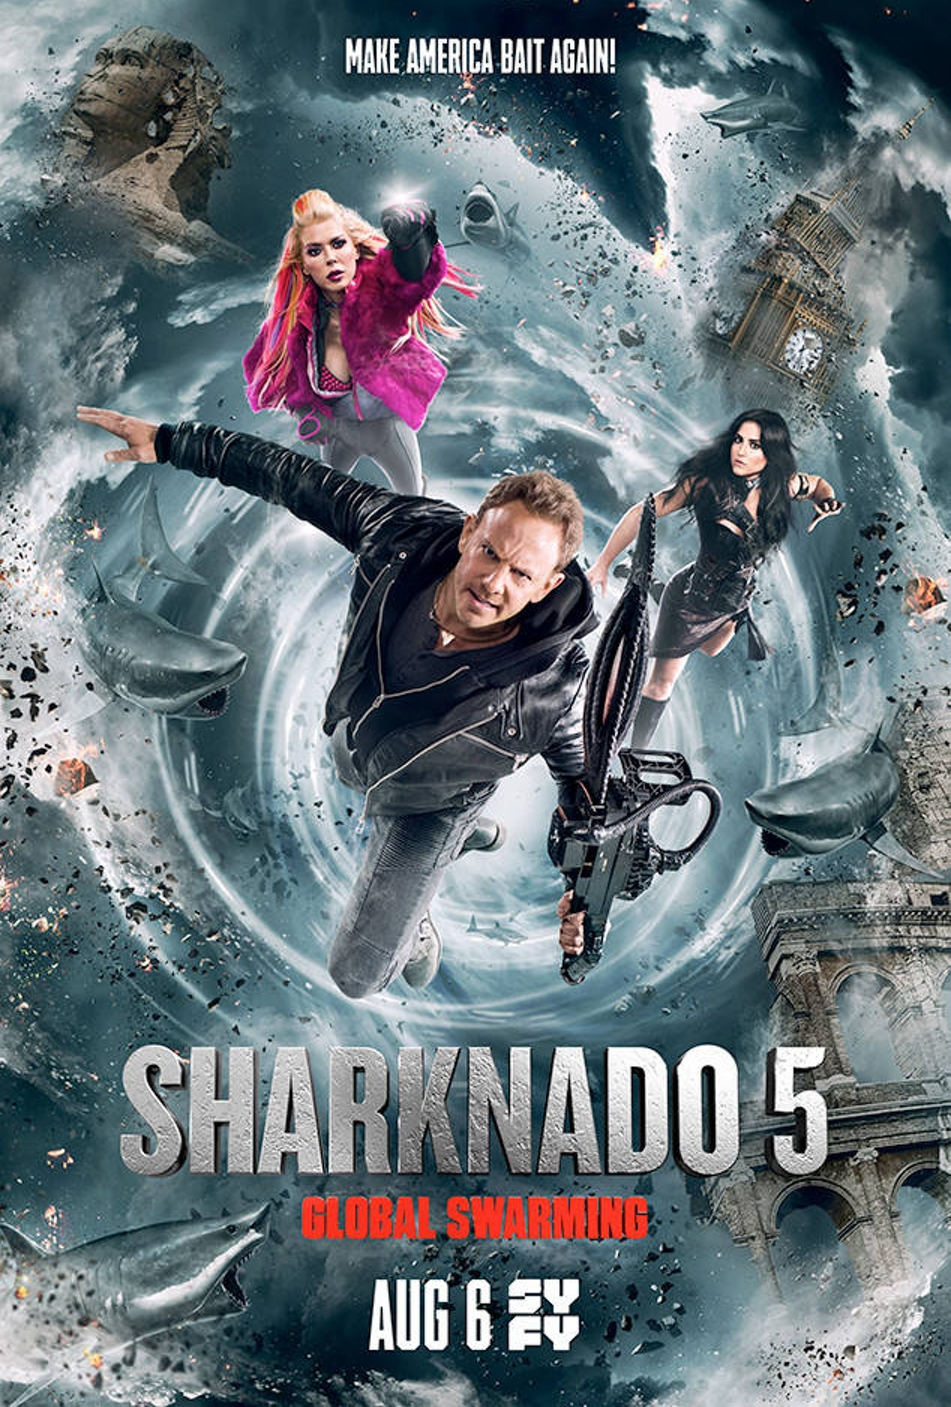 Sharknado 5: Global Swarming Vows To Make America Bait Again With Goofy New Poster